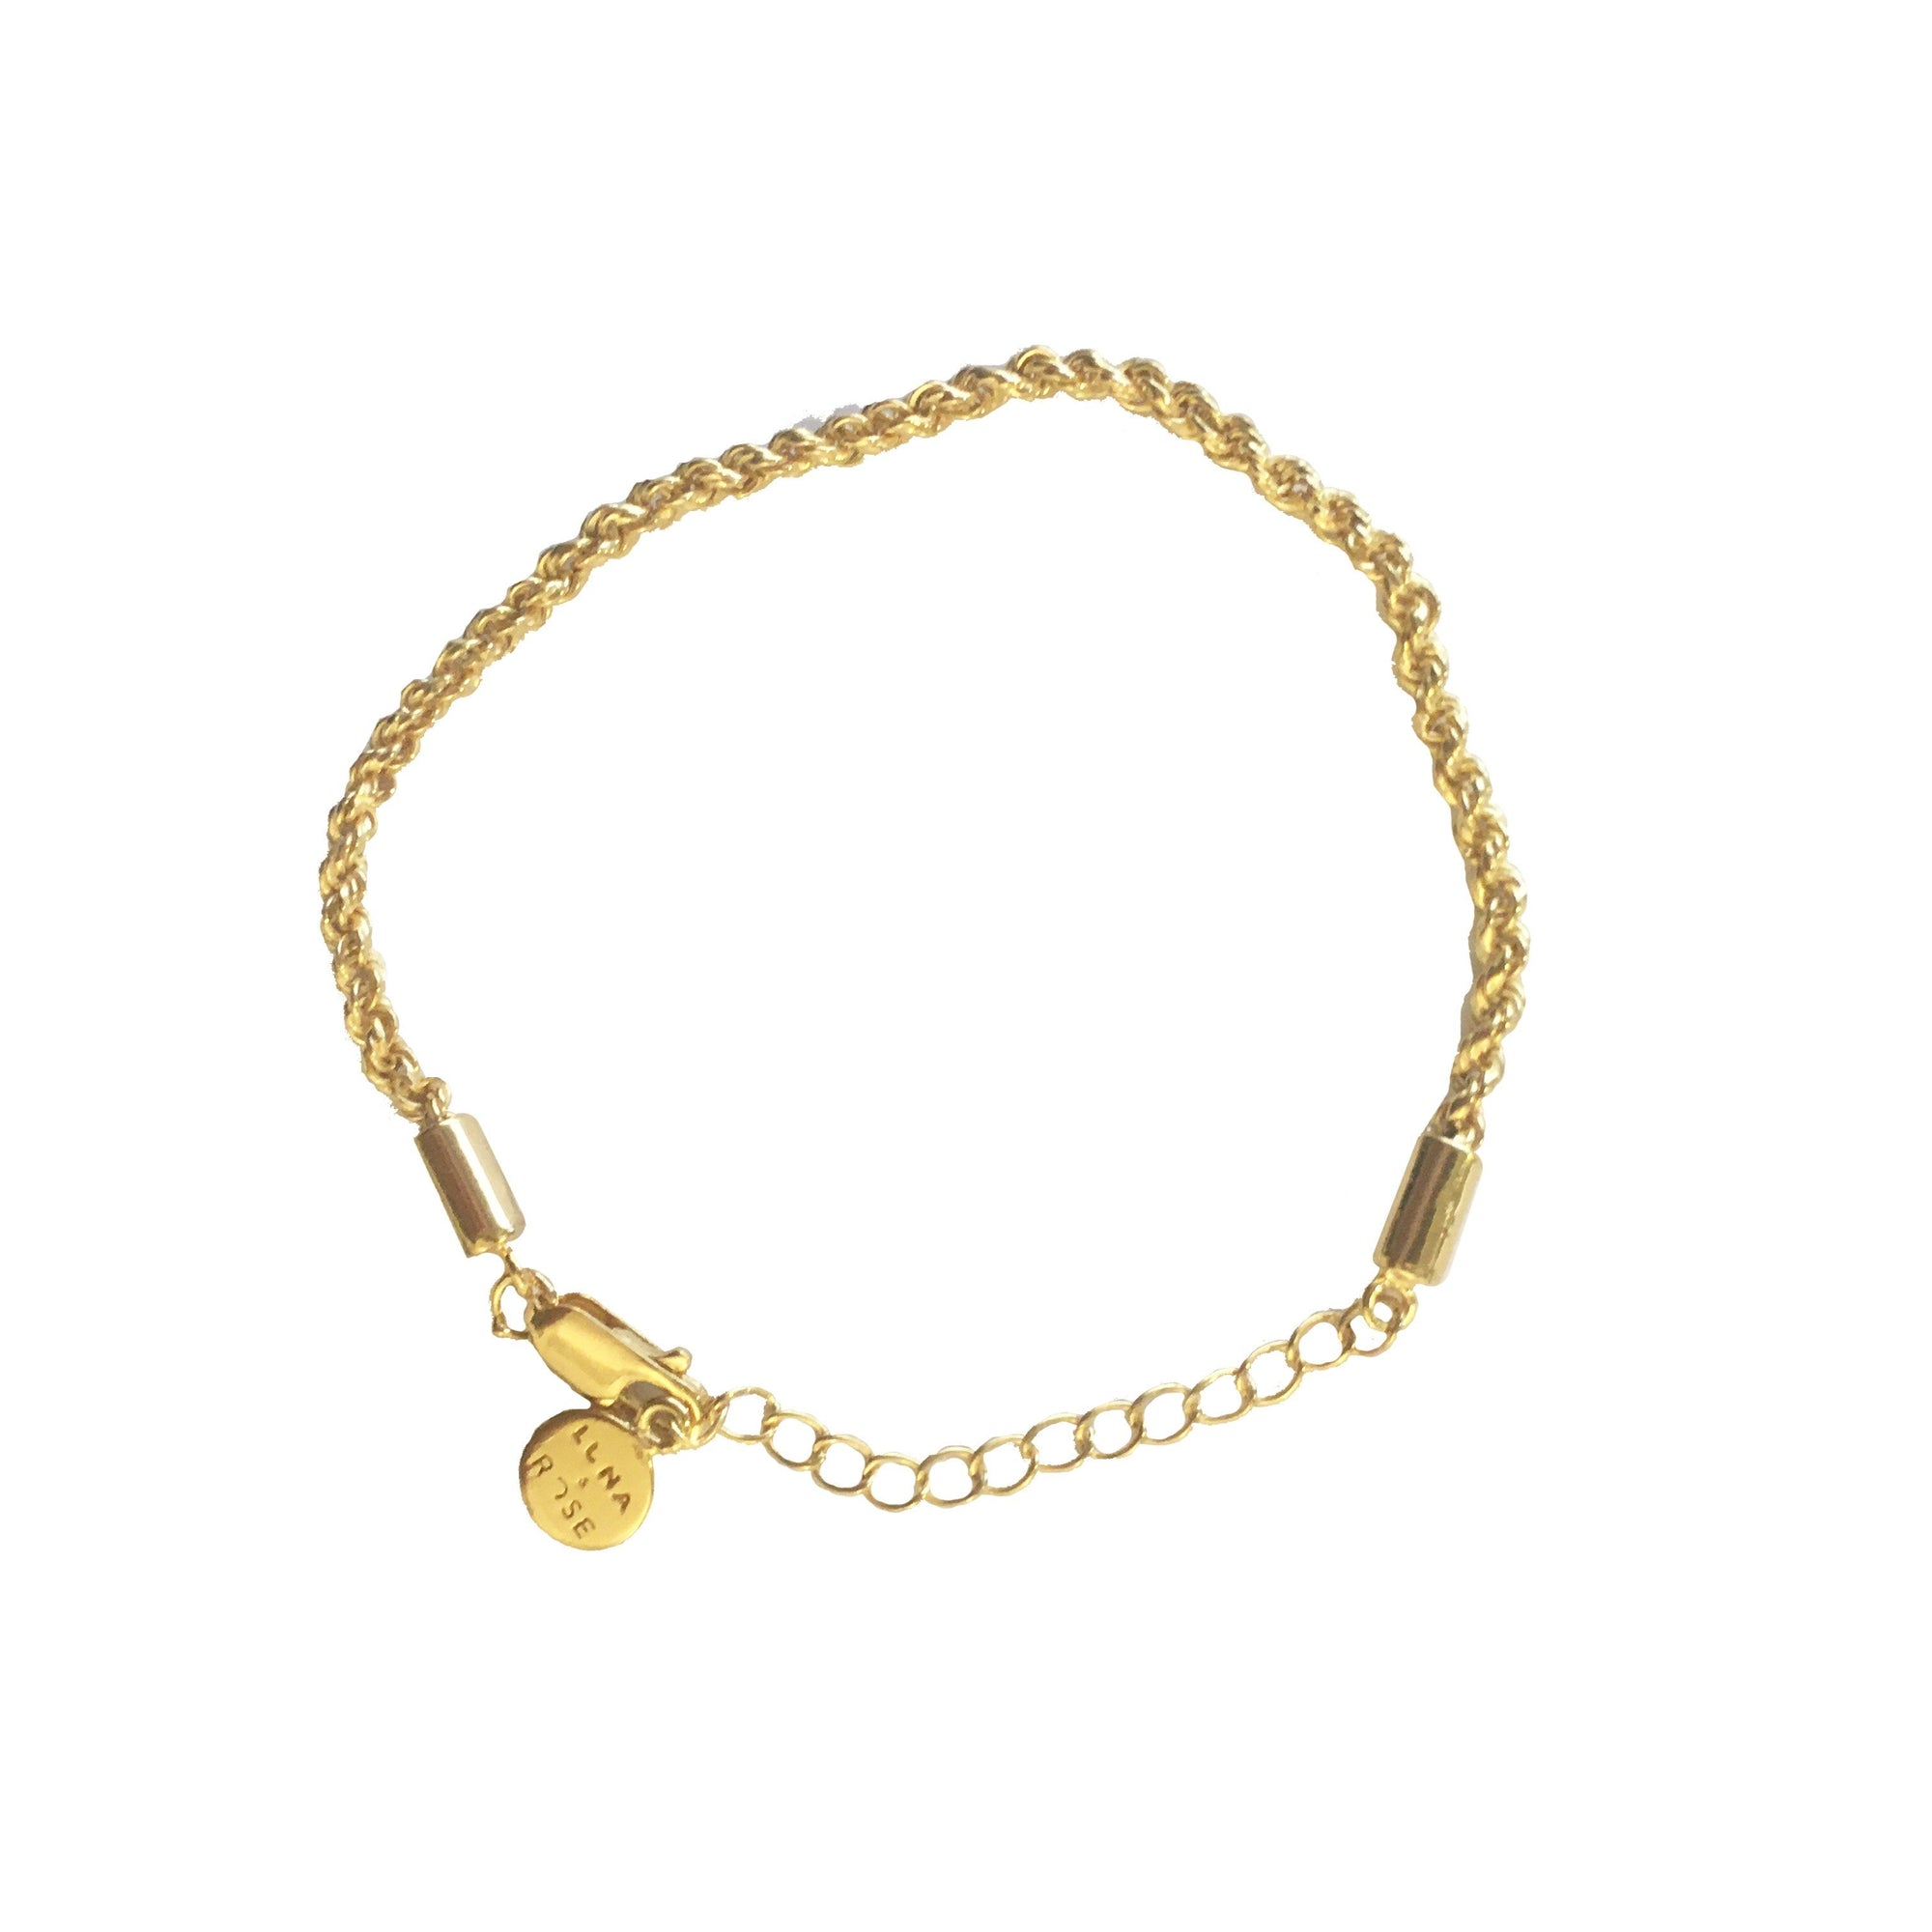 Rhode Island Rope Chain Bracelet in 18kt Gold